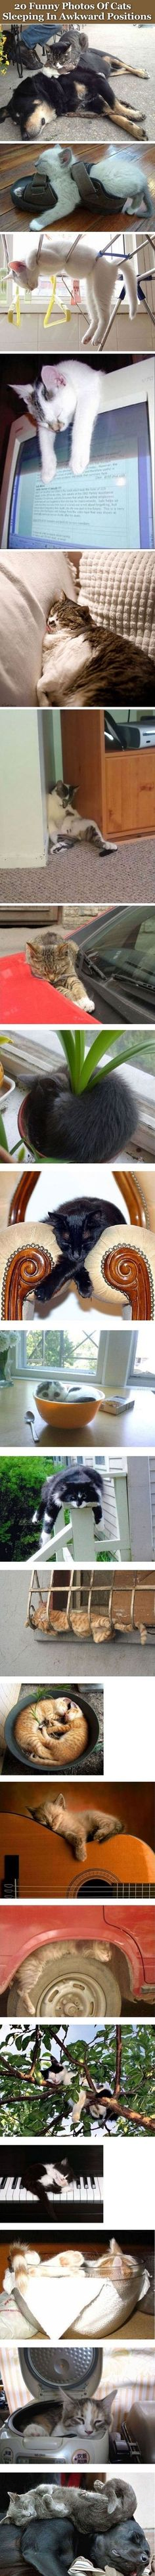 20 Funny Photos Of Cats Sleeping In Awkward Positions cute animals cat cats…